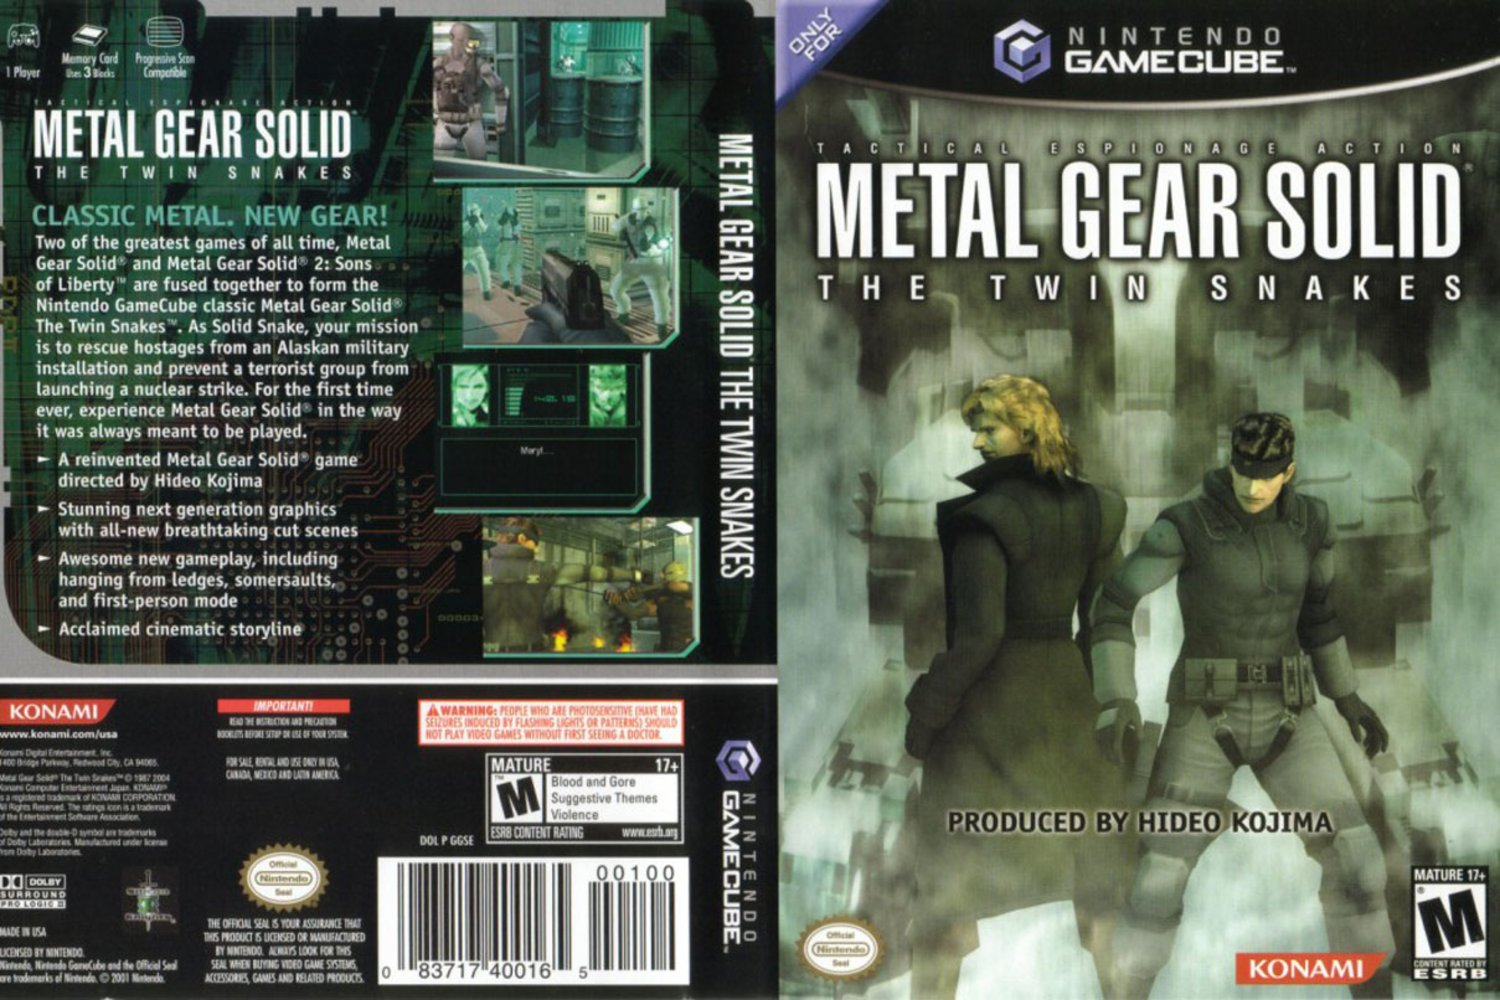 Metal Gear Solid The Twin Snakes 2004